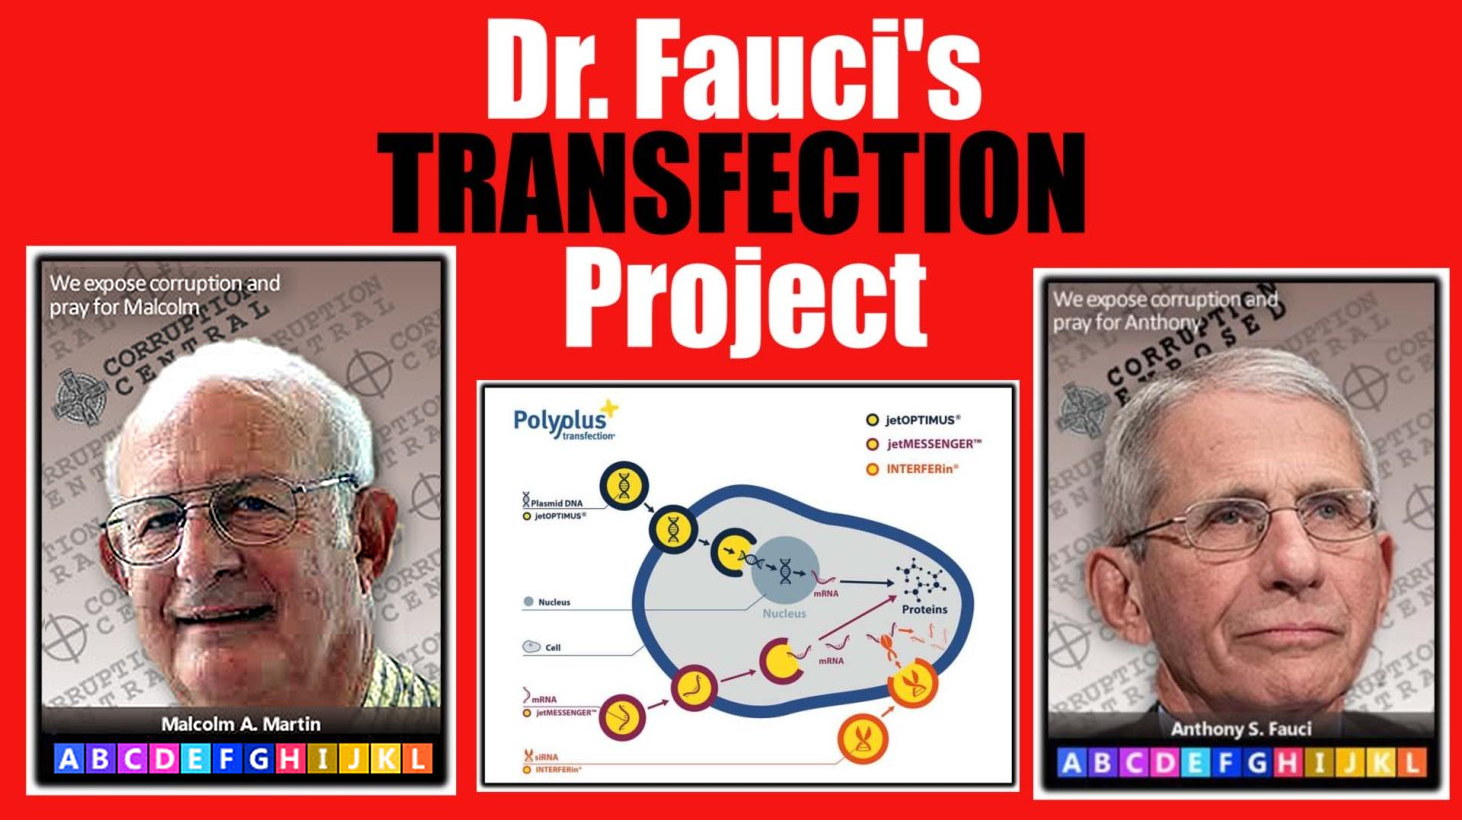 transfection-project-thumbnail